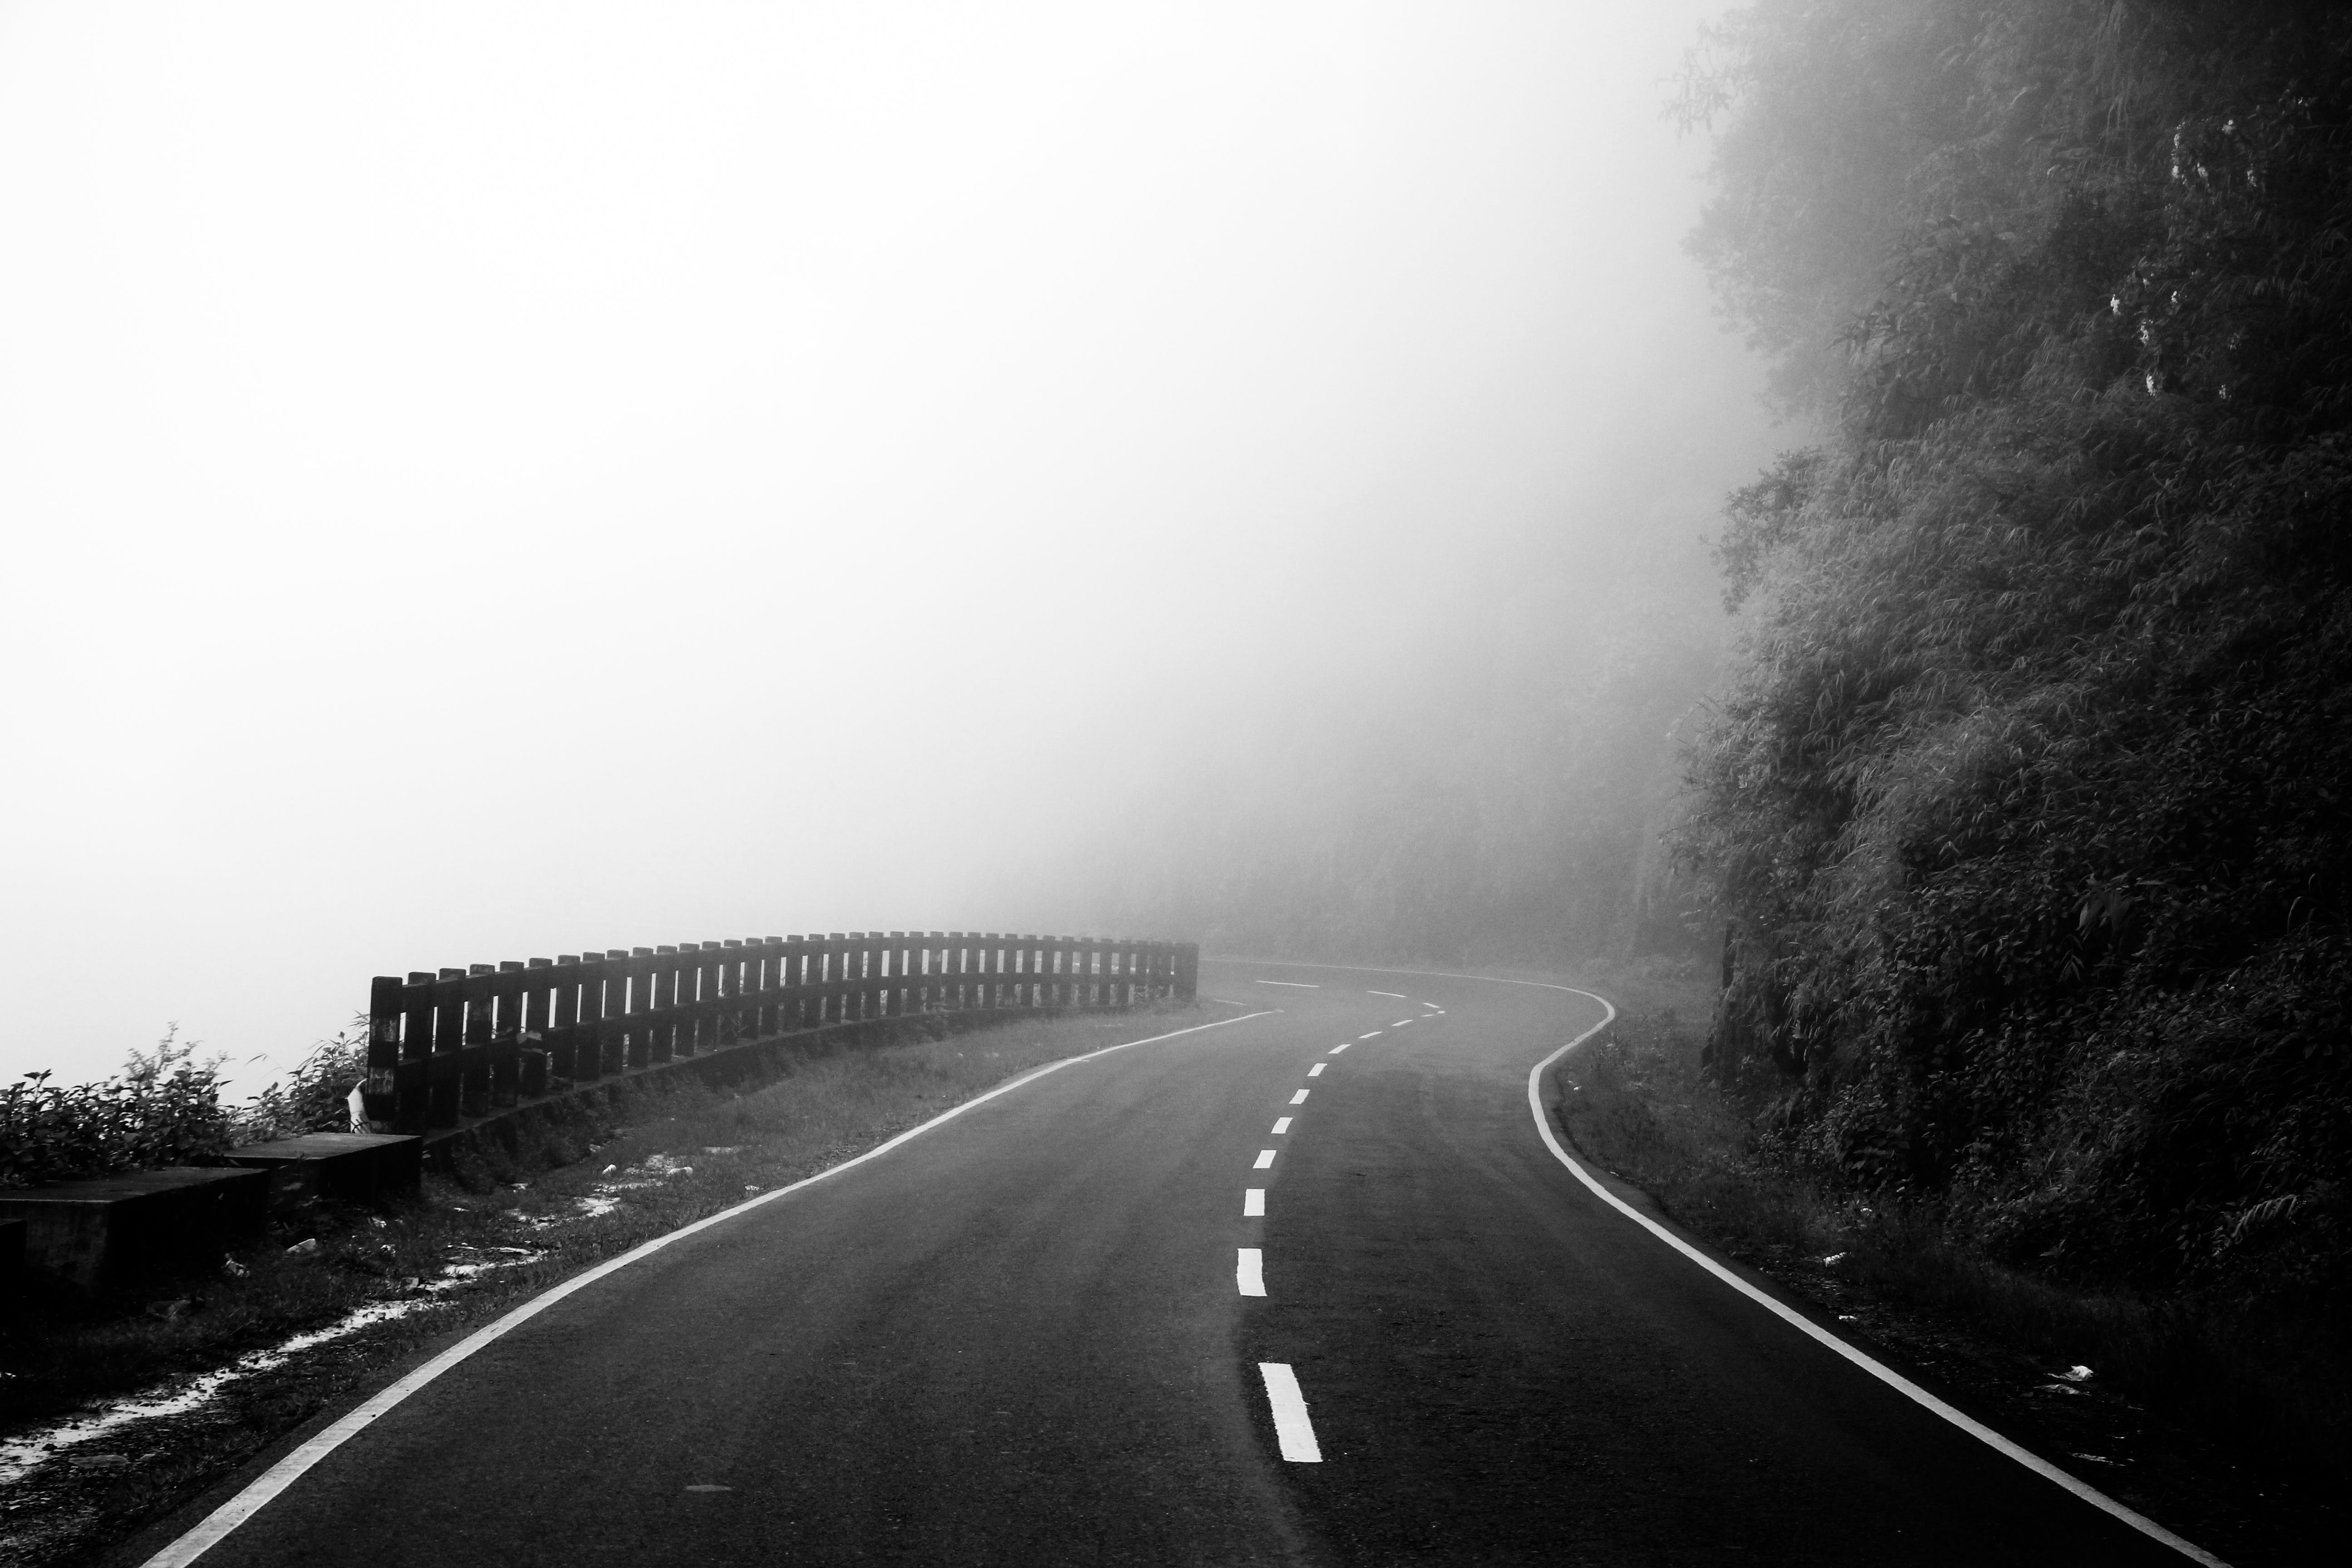 Free stock photo of black and white, cloud, curvy road, empty street